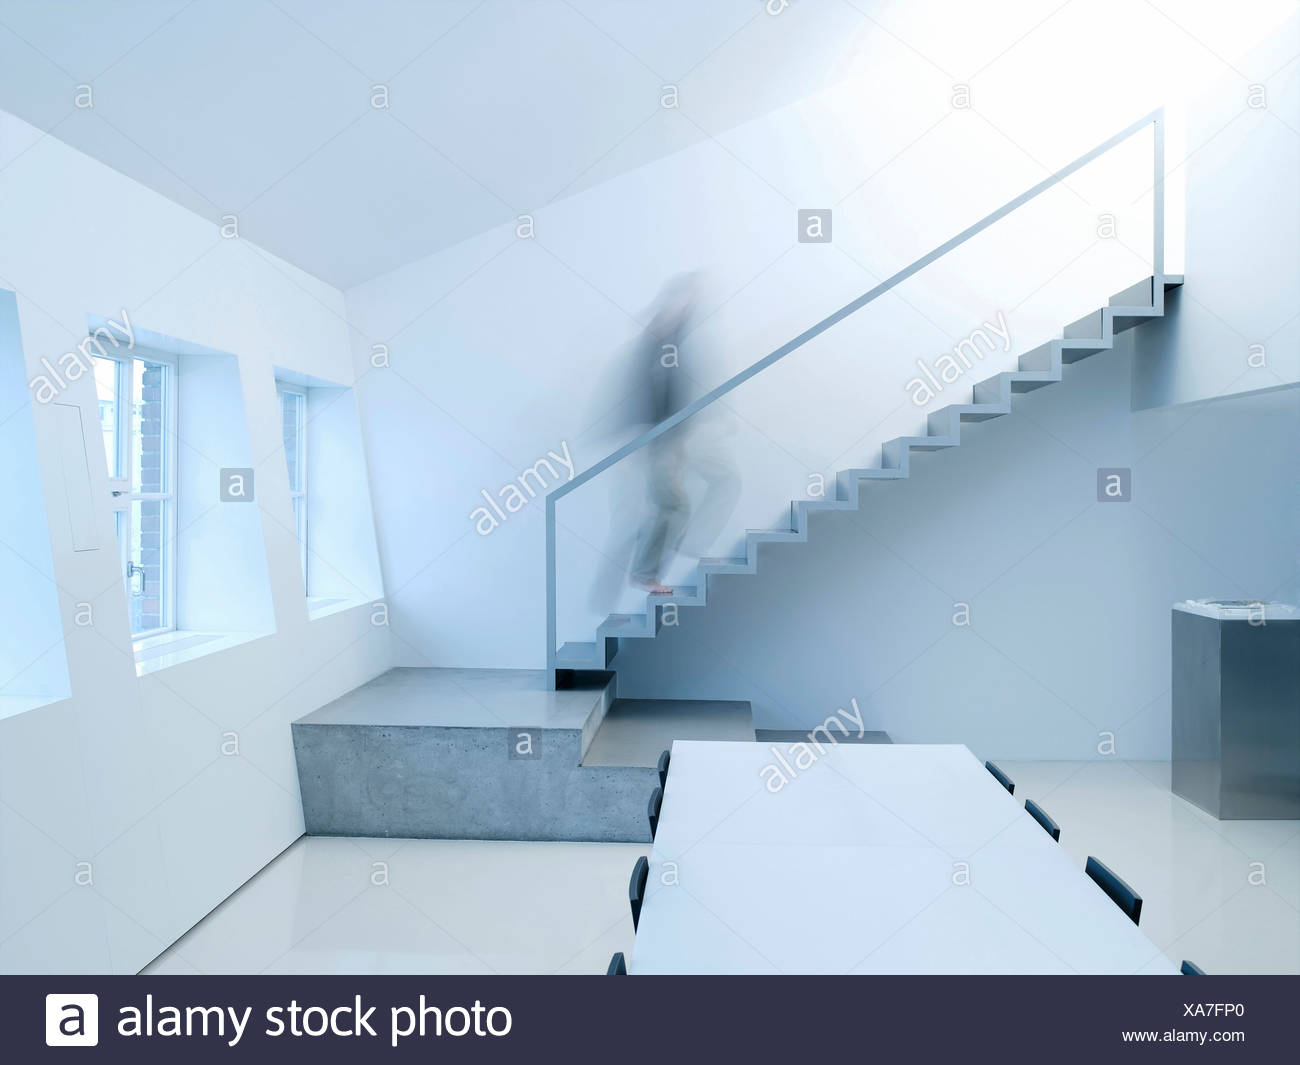 Person walking upstairs, side view - Stock Image